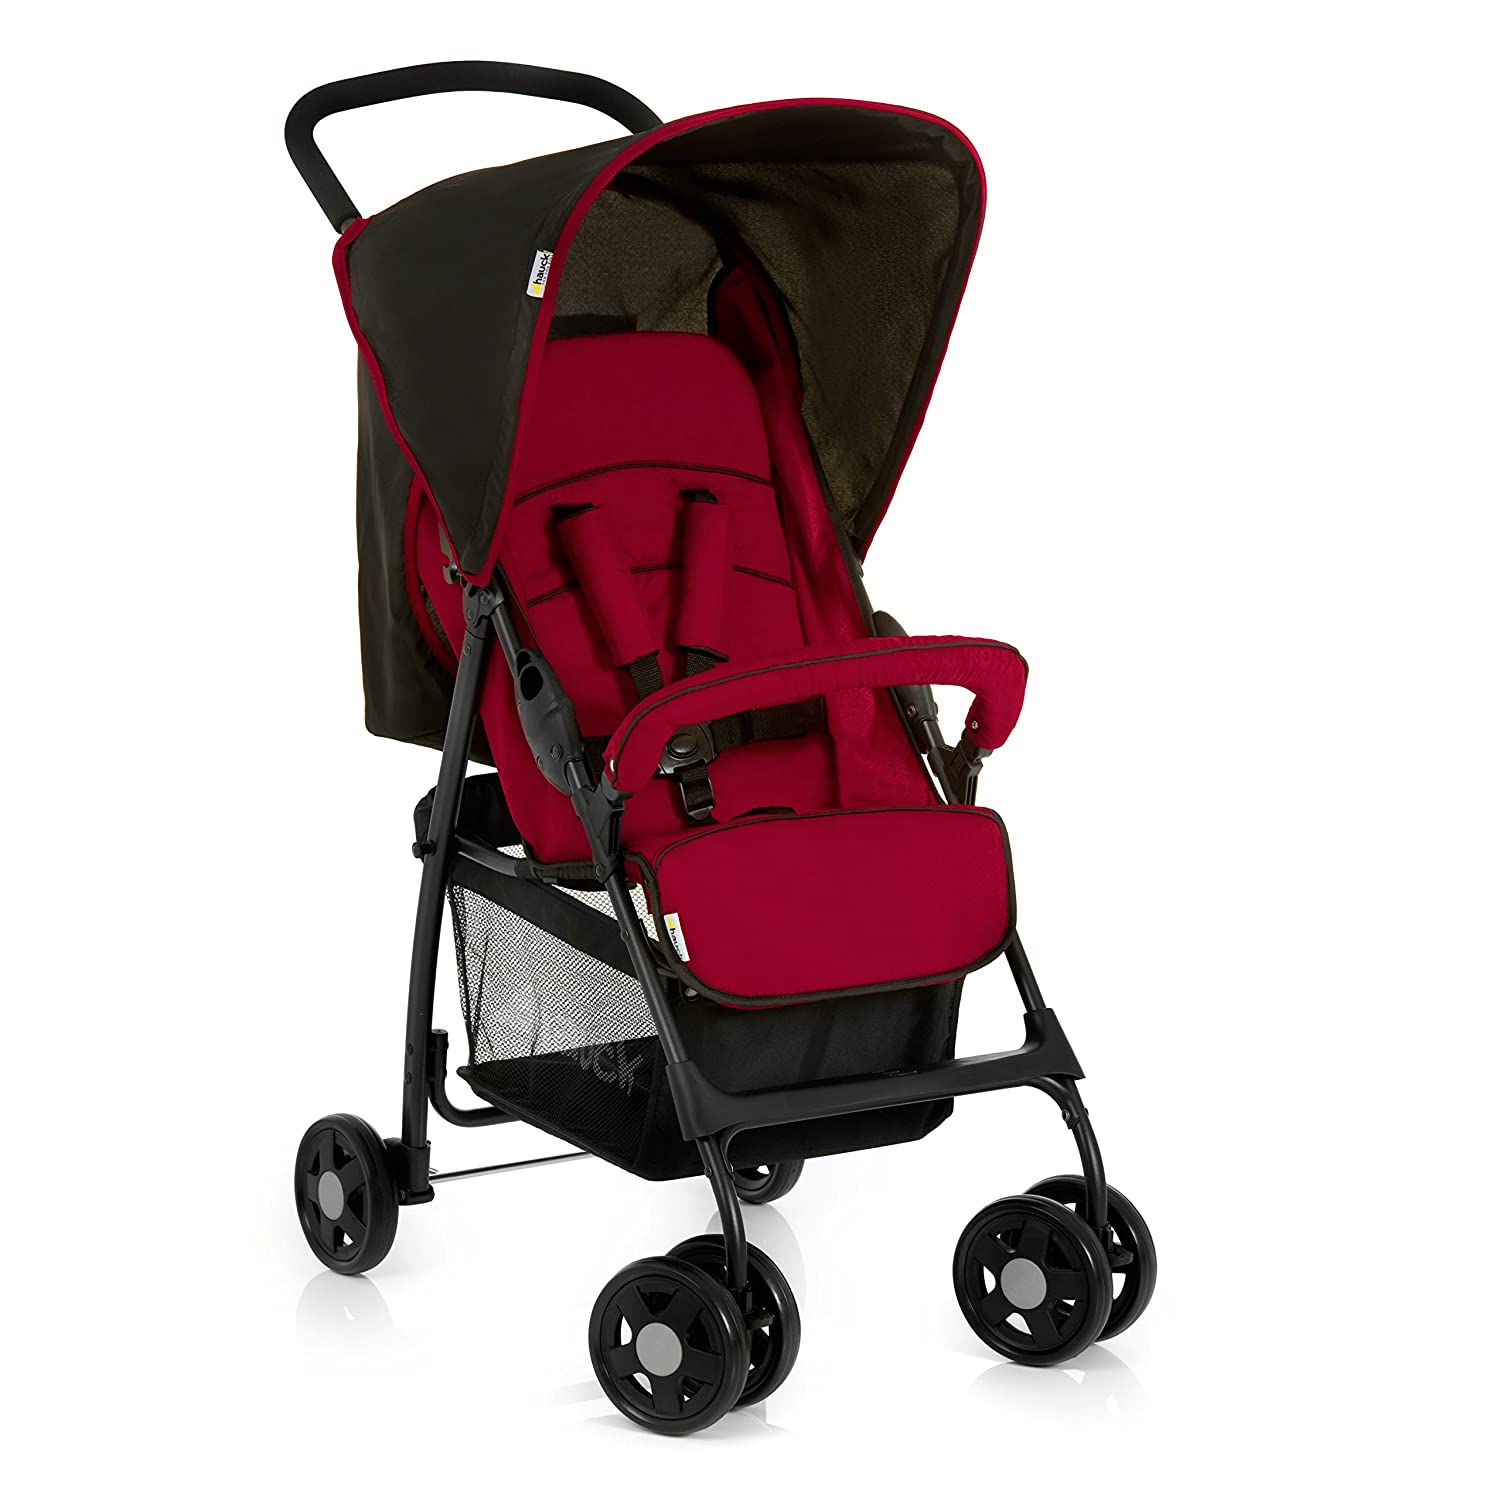 Hauck 171226 Sport Disney Stroller Sport, with Sitting in Extended Position, Folding, for Children from 0 Months up to 6.2 kg, Tango Caviar (Red Black)